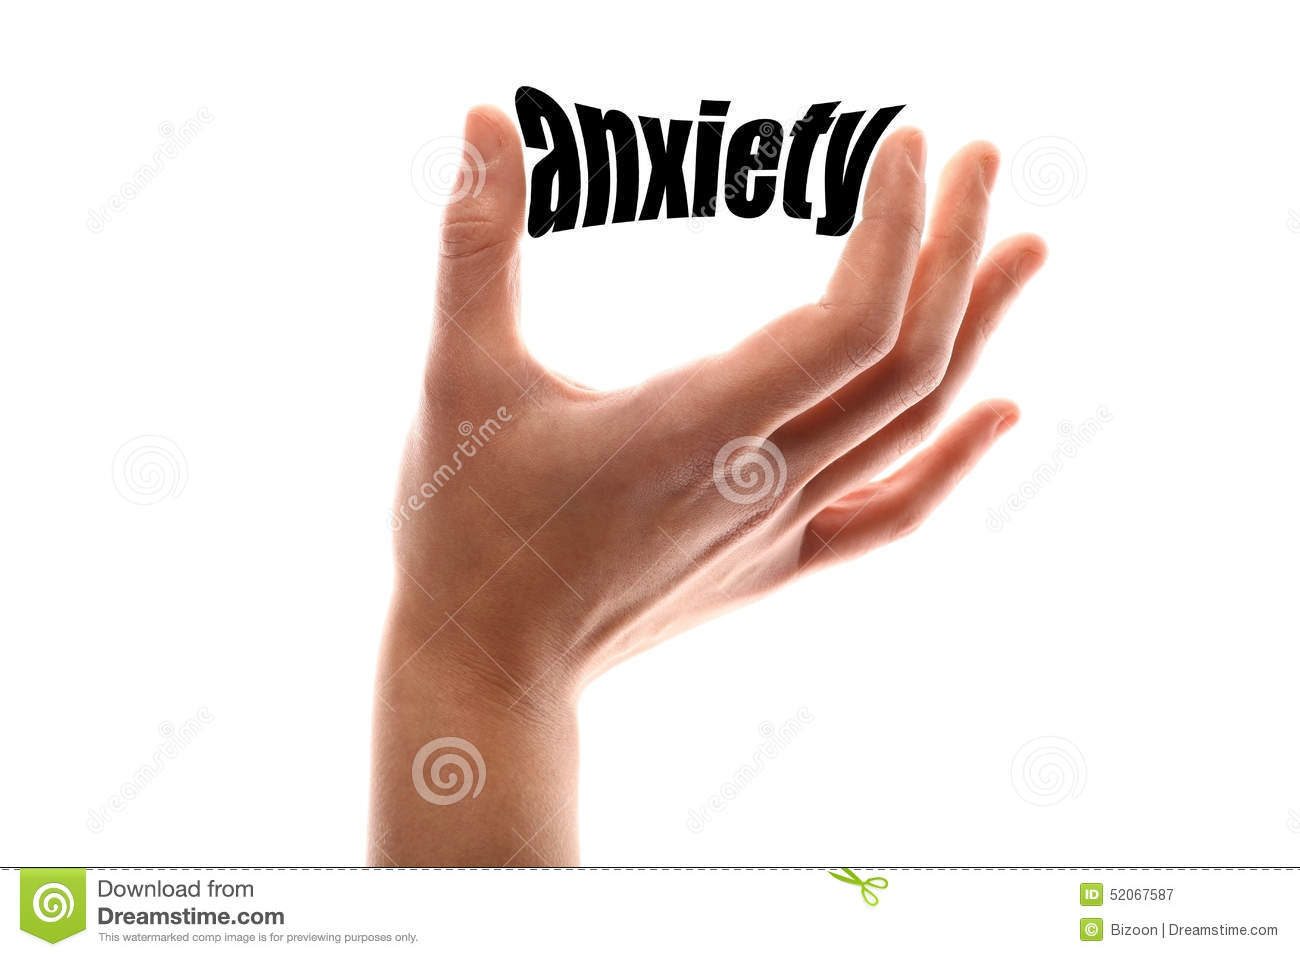 little-anxiety-color-horizontal-shot-hand-holding-word-two-fingers-52067587[1]